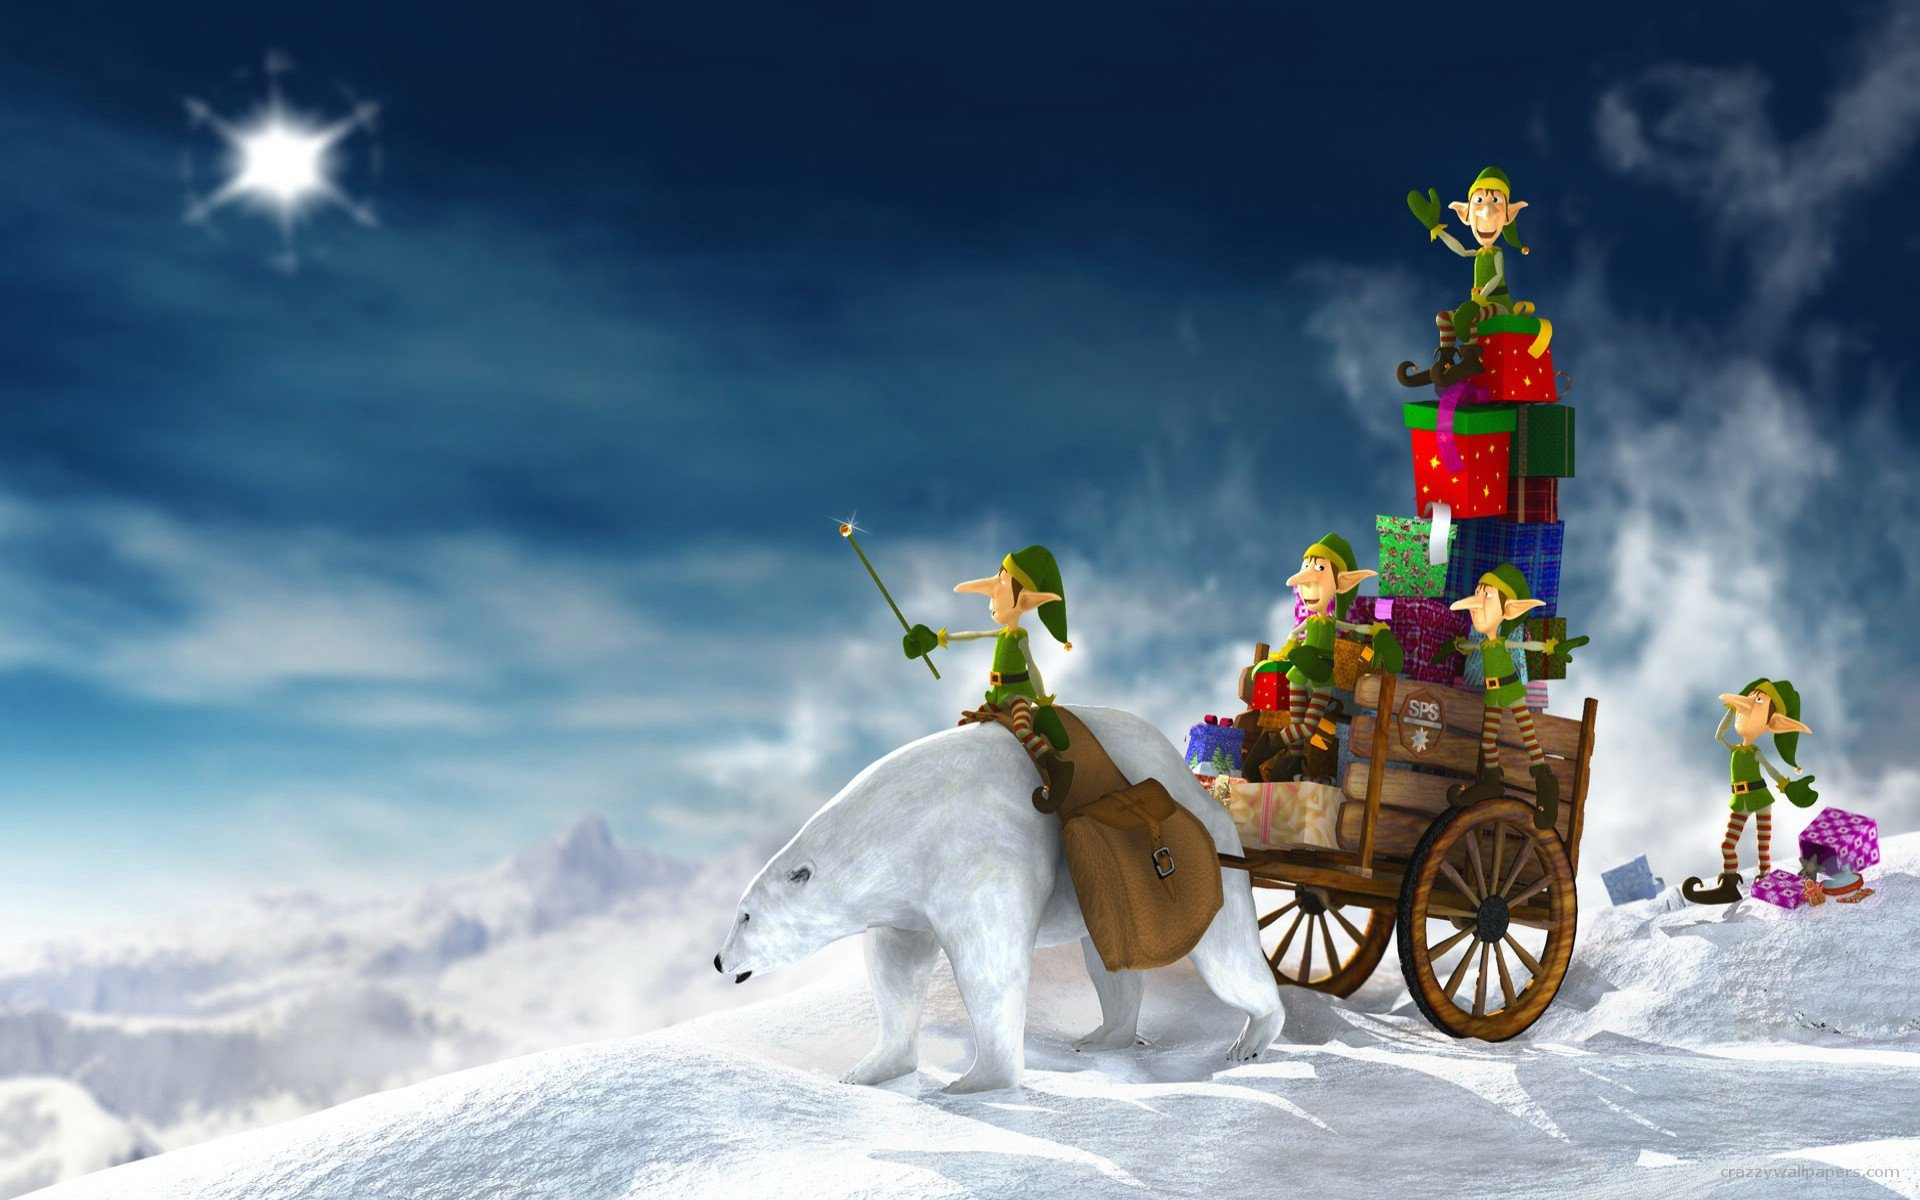 35 Christmas Wallpapers for Decorating your Desktop Webdesign Core 1920x1200